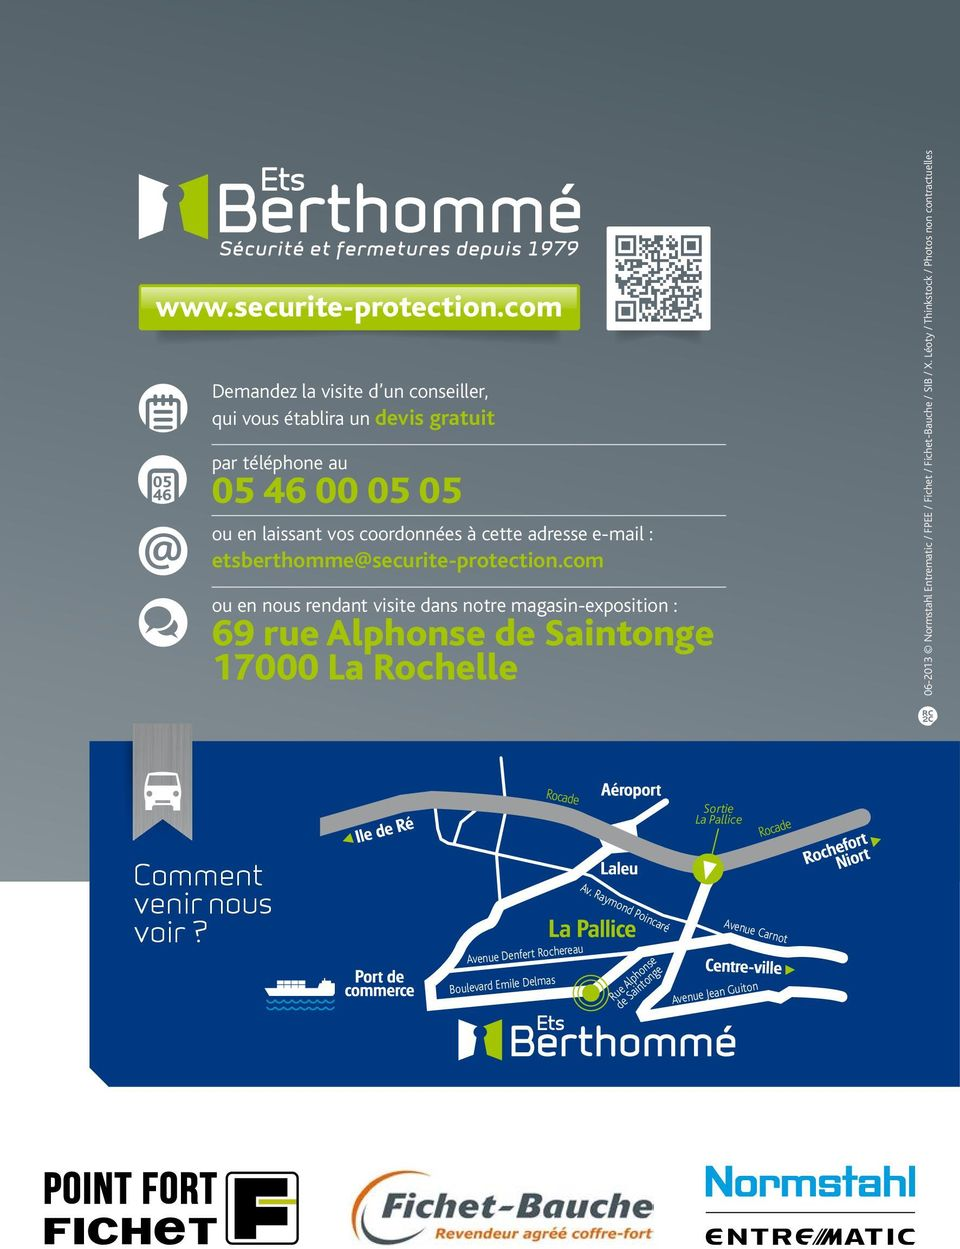 e-mail : etsberthomme@securite-protection.